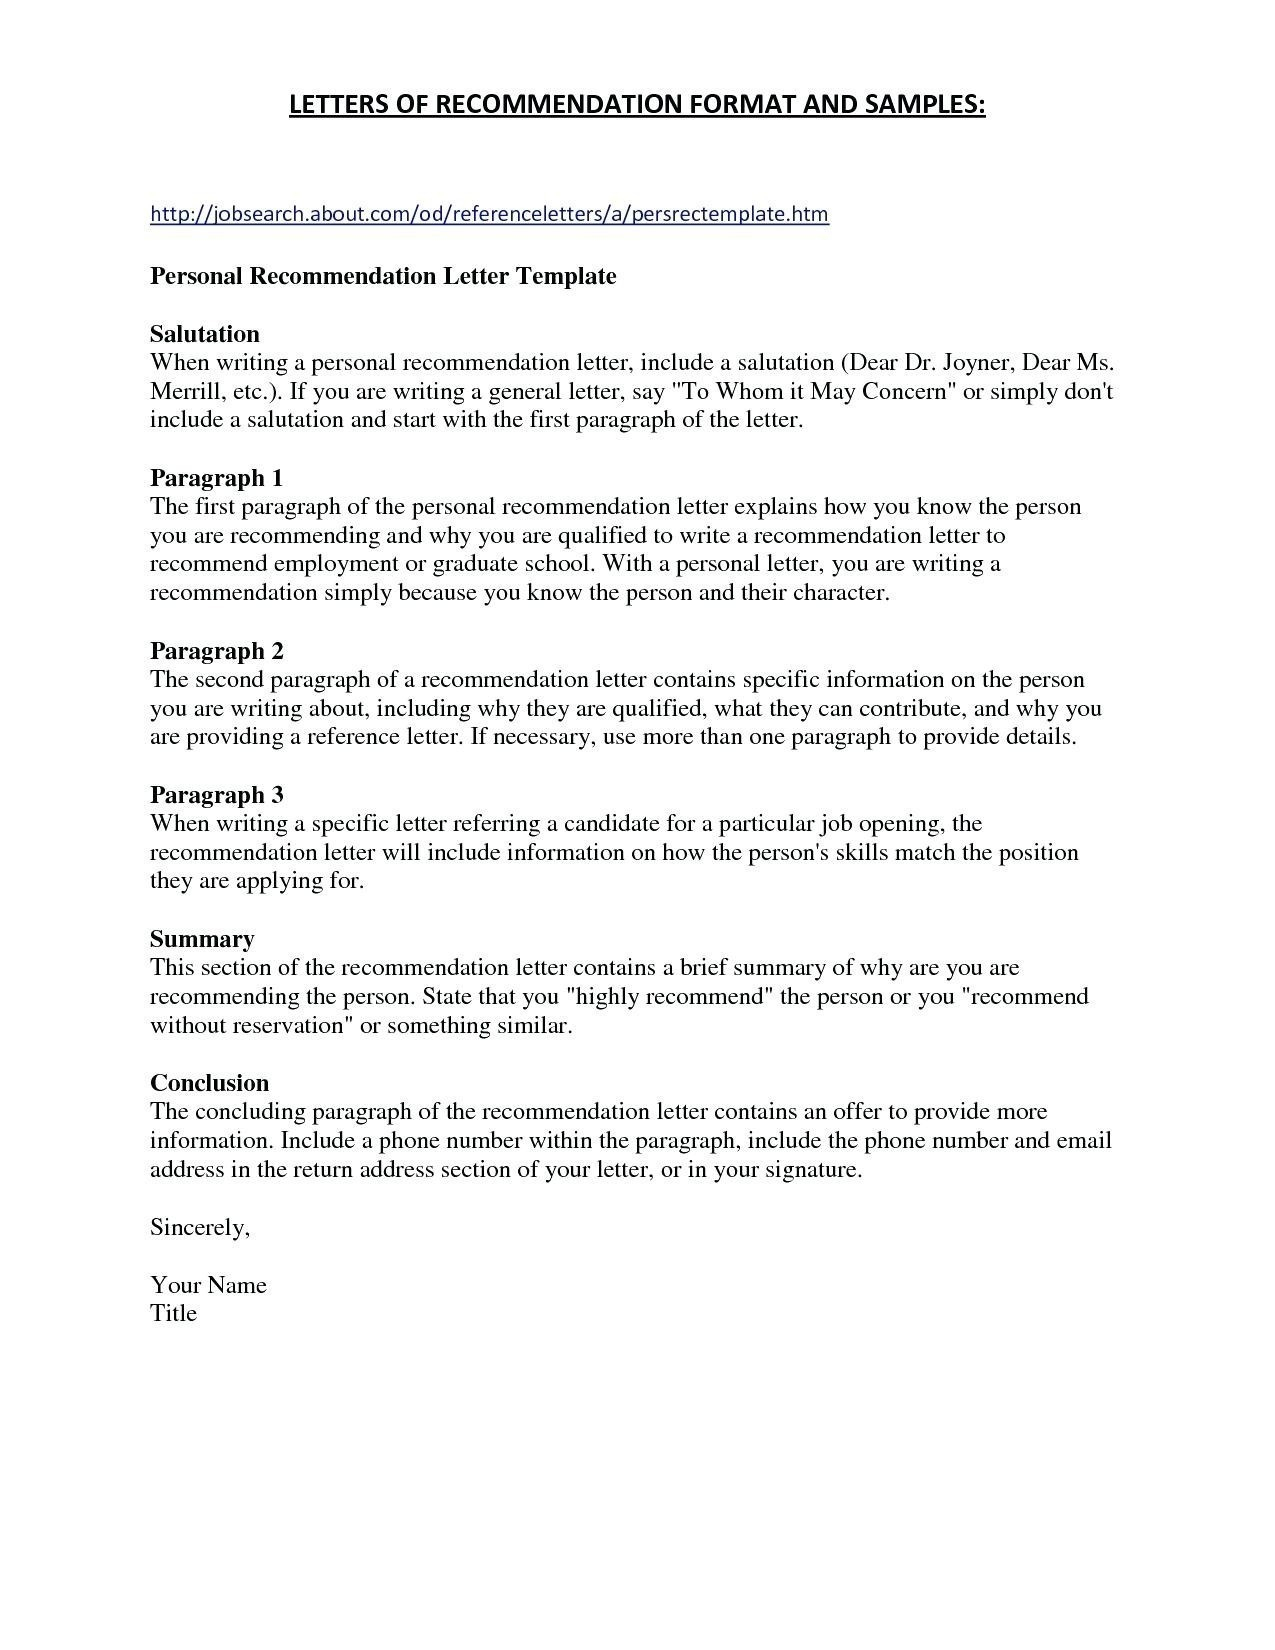 Letter Of Recommendation Request Template - Job Reference Letter Re Mendation Template Fresh Re Mendation